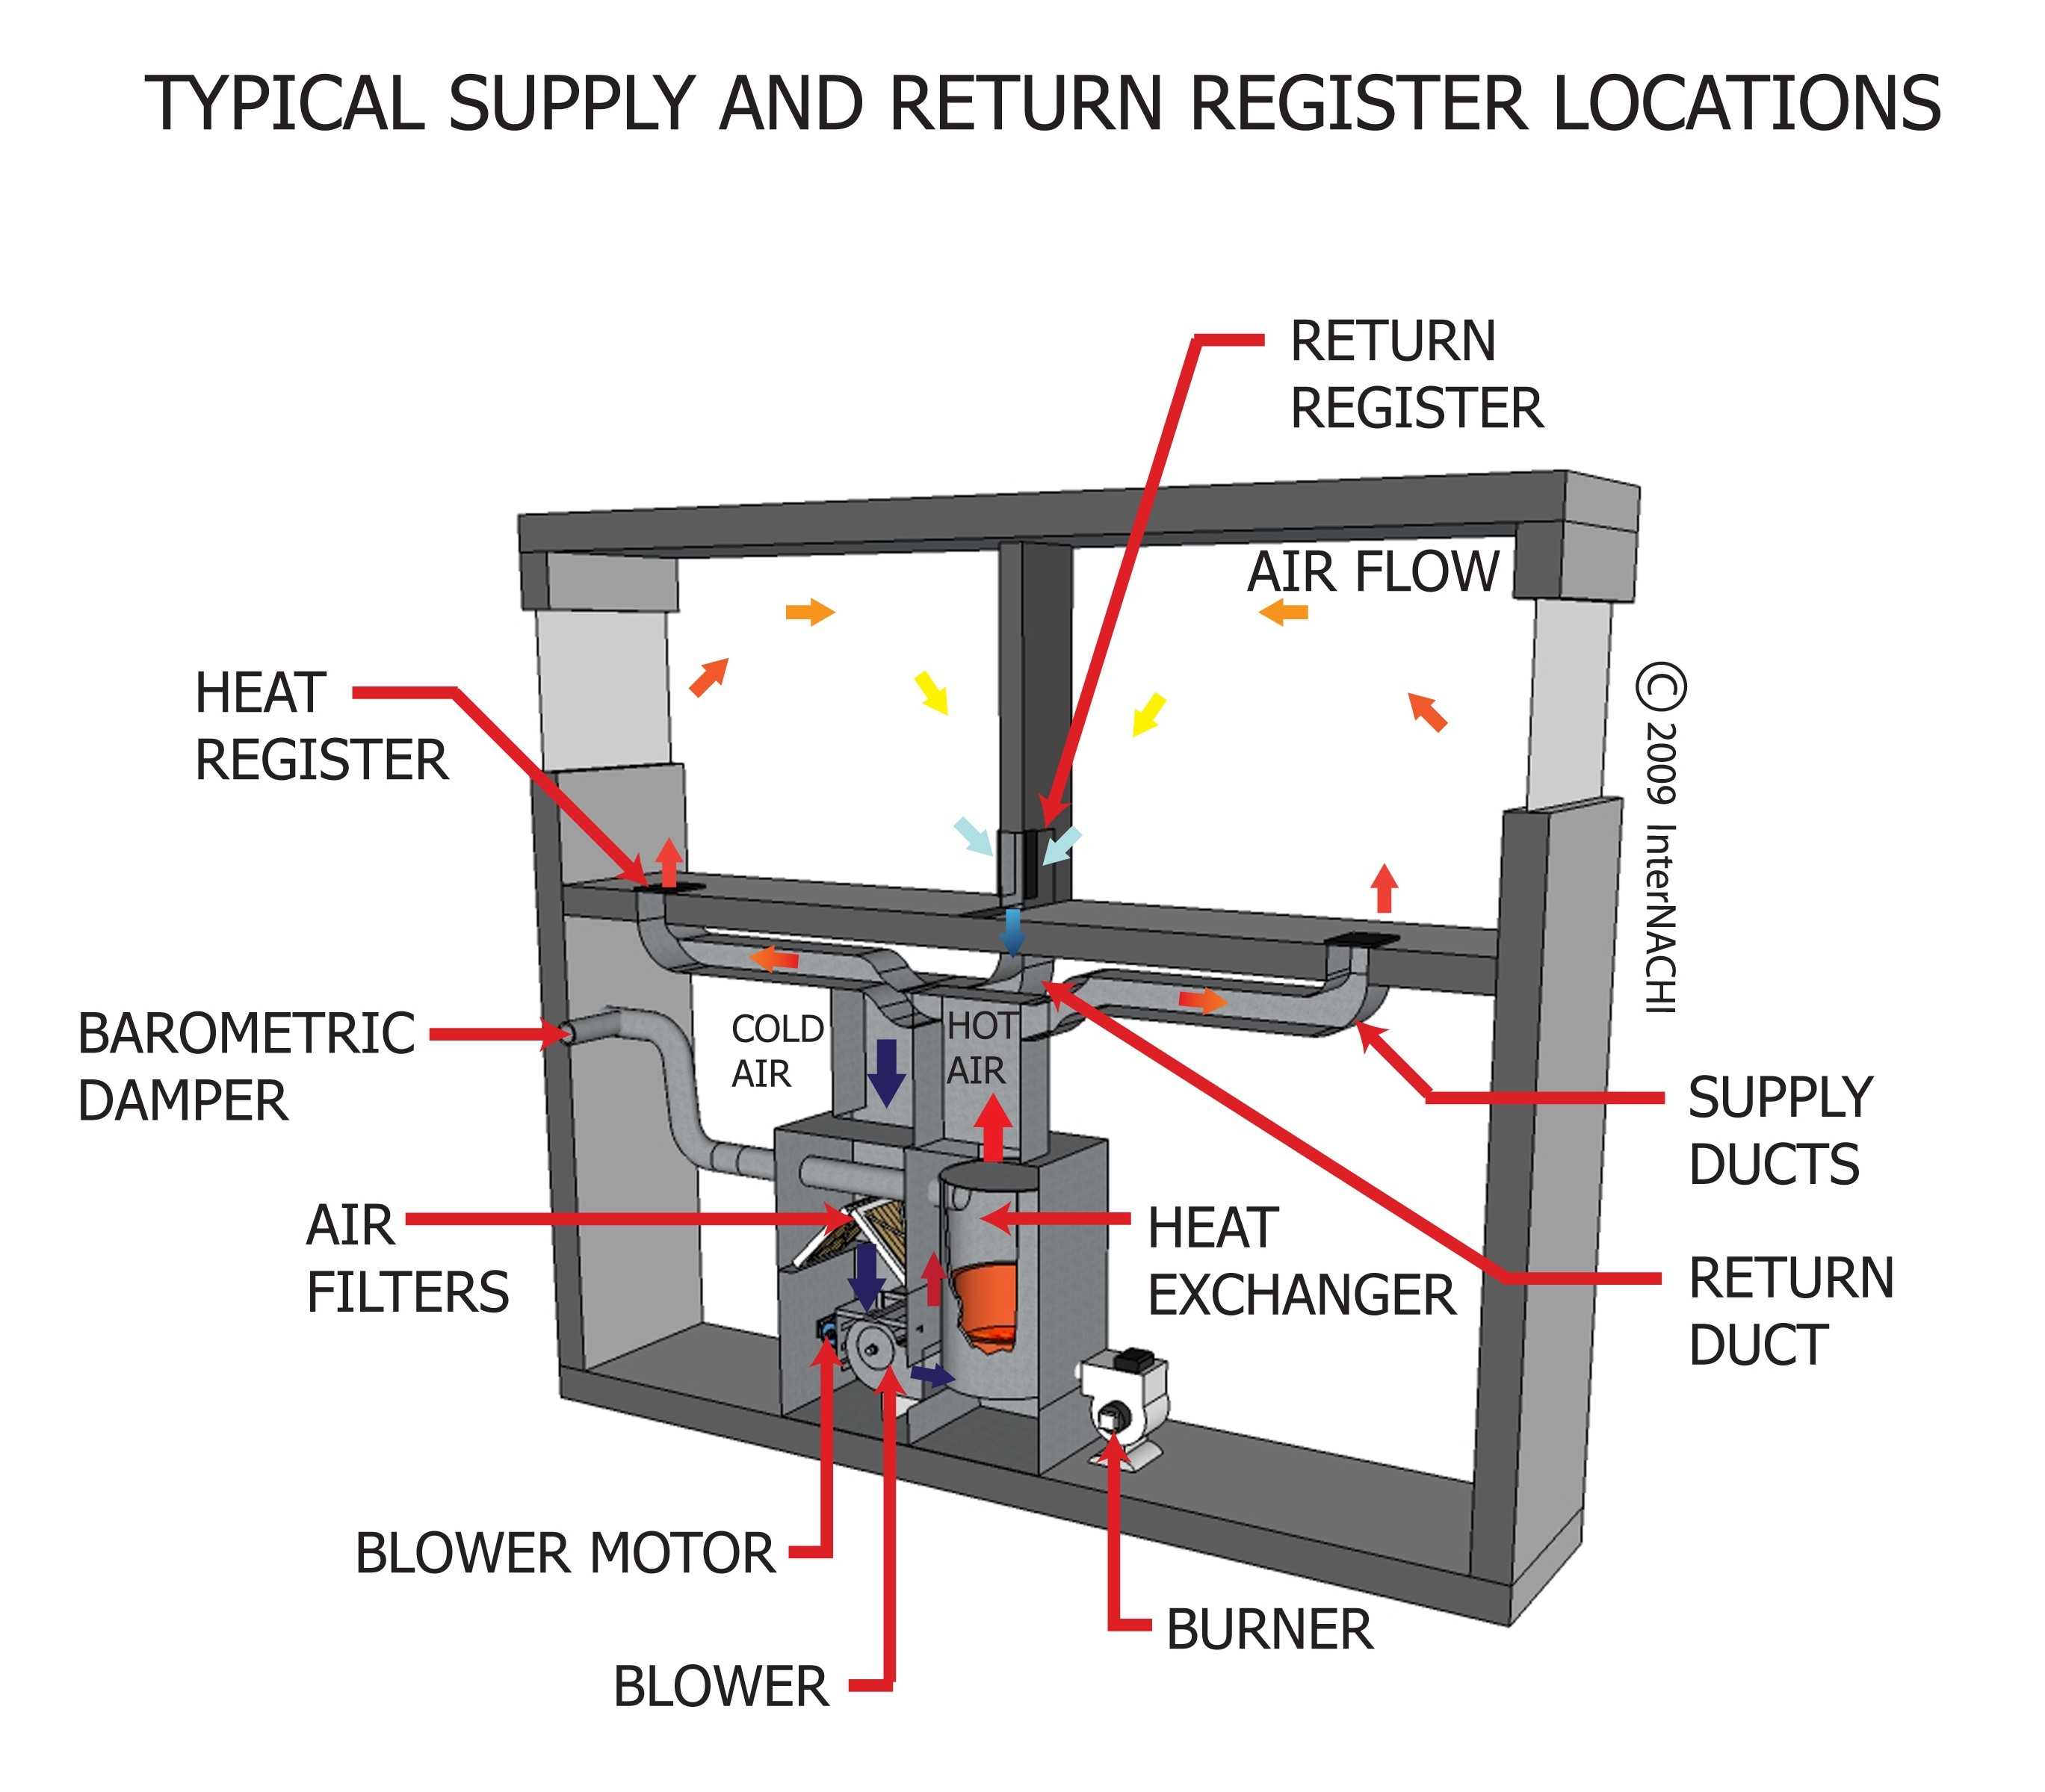 Typical Supply and Return Register Locations